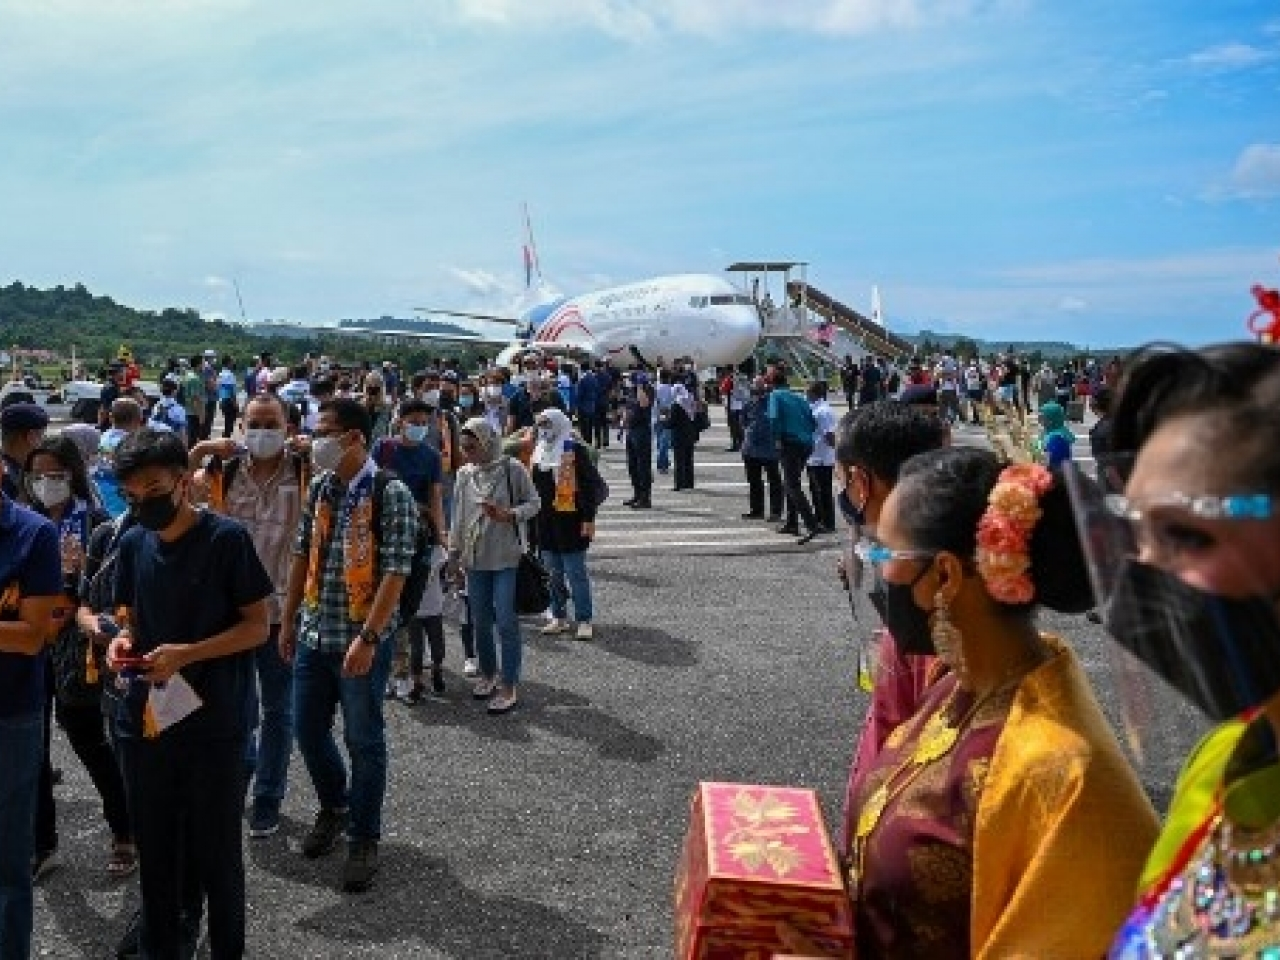 Tourists arriving at Langkawi say they're excited to be travelling again. Photo: AFP